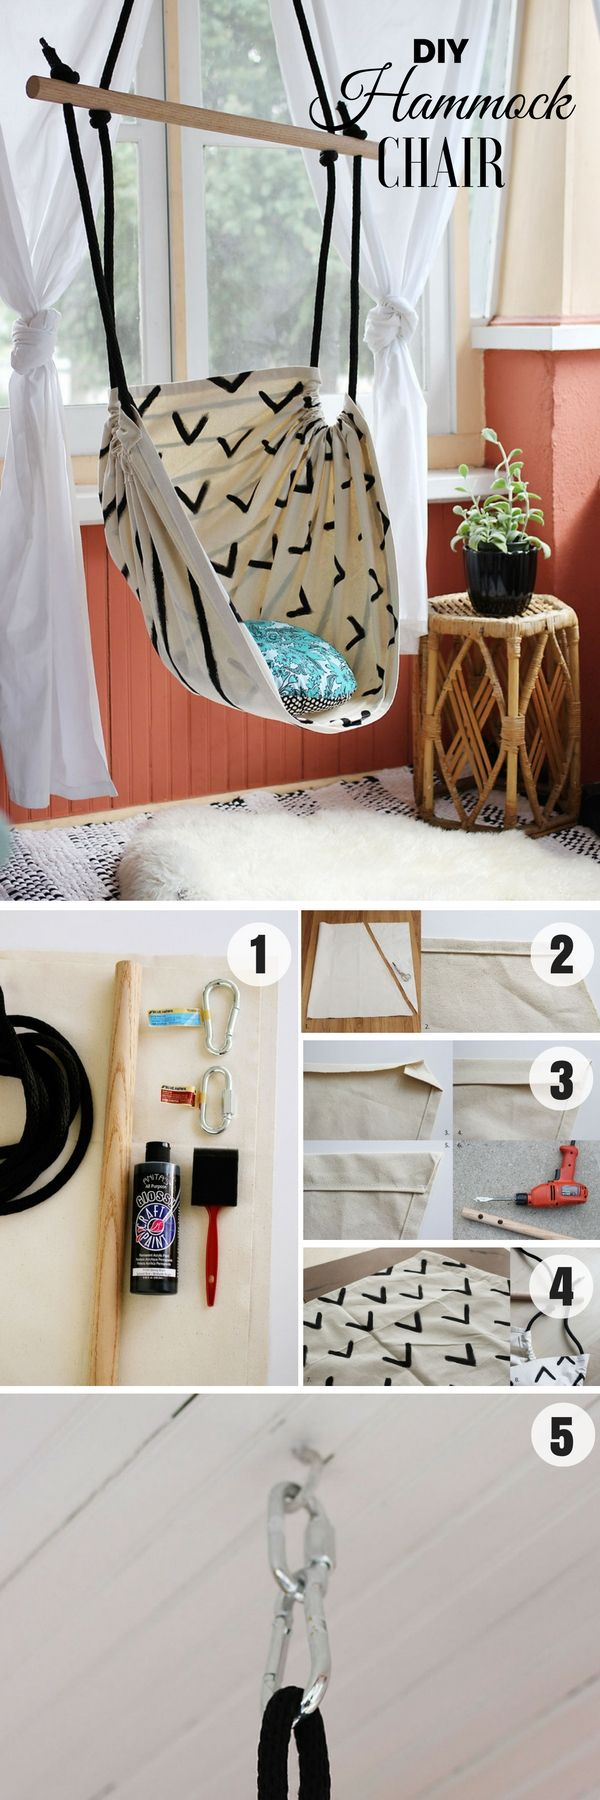 Best 25 Diy room ideas ideas on Pinterest Diy room organization